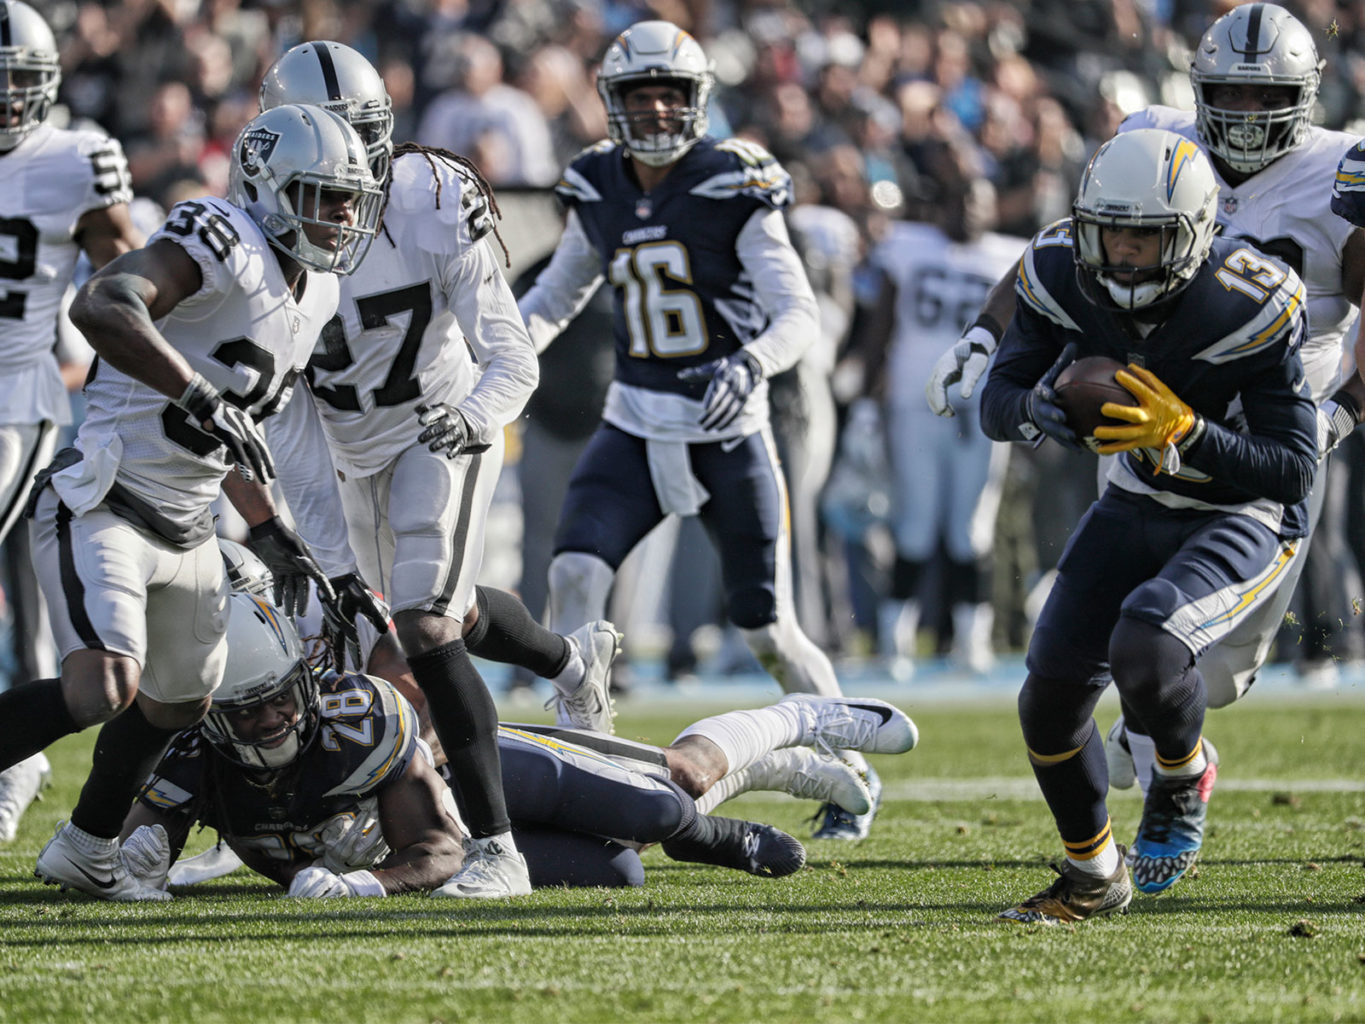 The Chargers' Keenan Allen runs for a touchdown after recovering a fumble in the first quarter of Los Angeles' 30-10 win over the Oakland Raiders on Sunday. Just like Sunday's contest, most of the Raiders were no-shows on Monday when the team was scheduled to be available to the media. (Robert Gauthier/Los Angeles Times/TNS)